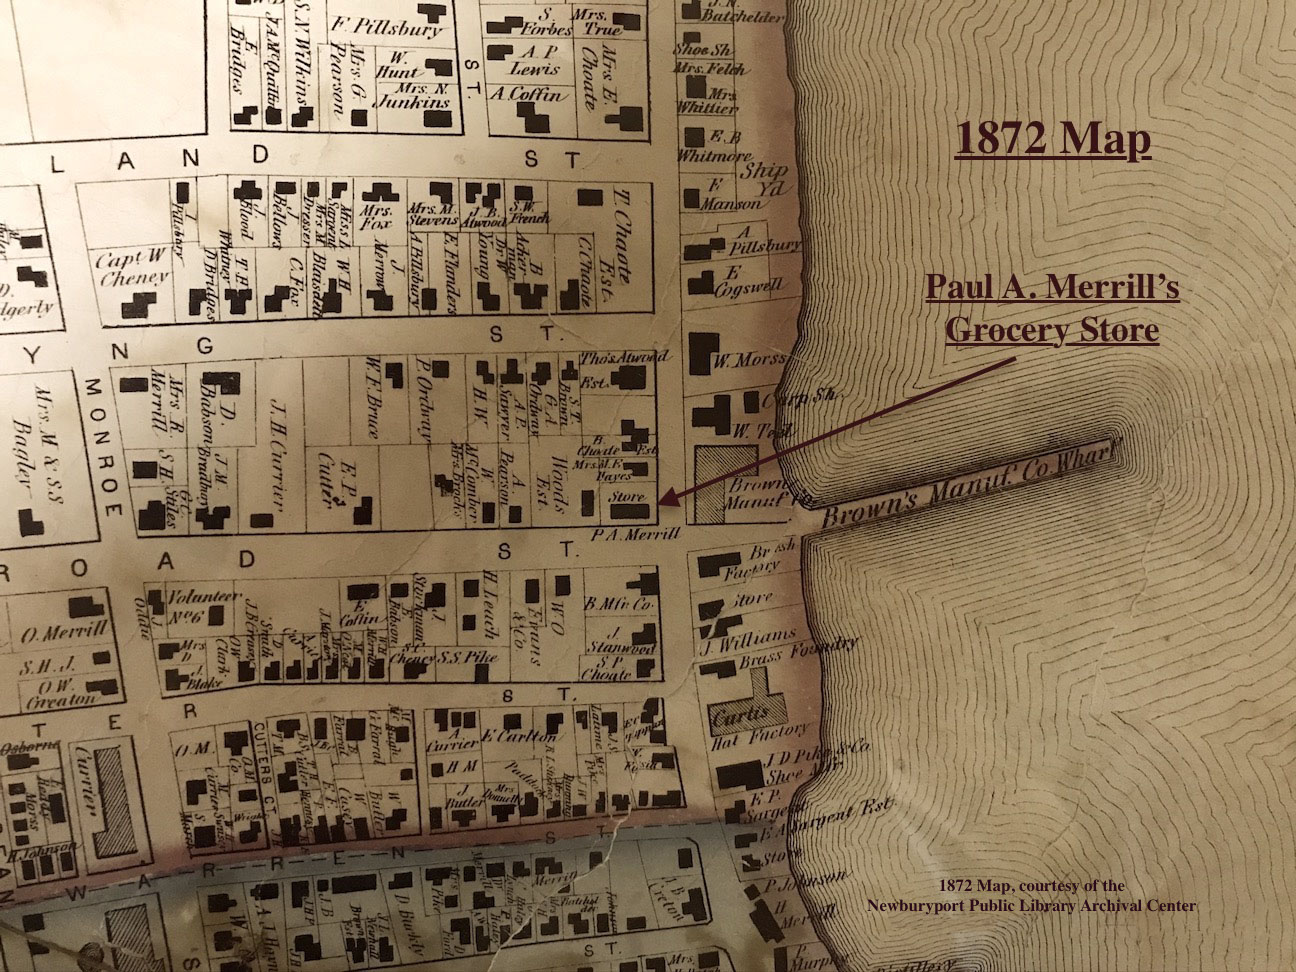 1872 Map Paul A. Merrill's Grocery Store Newburyport MA